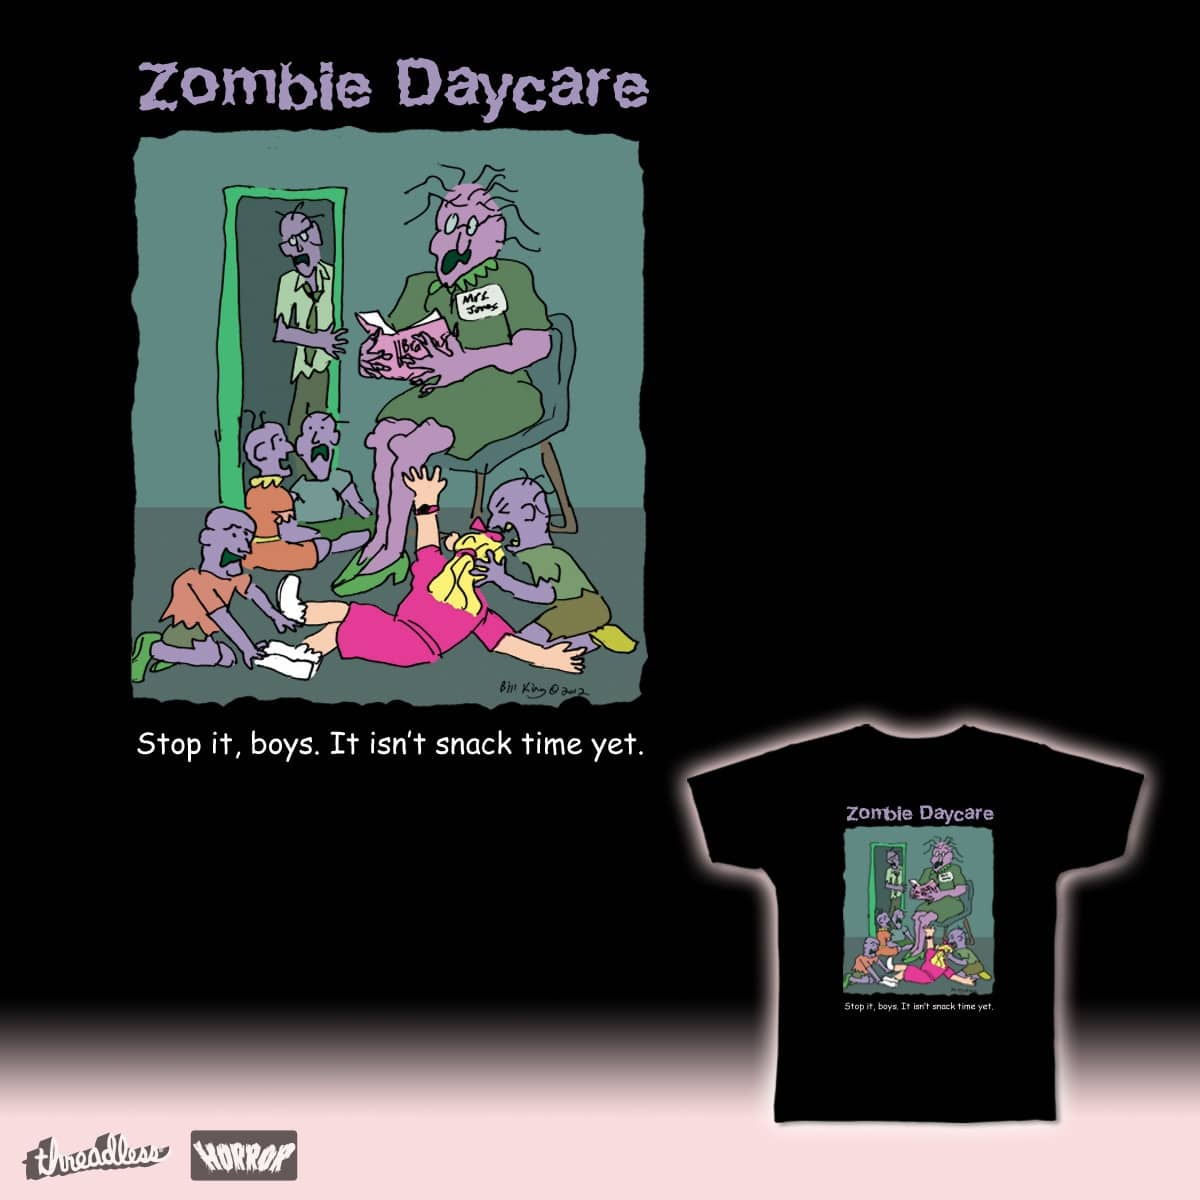 Zombie Daycare by Bill-K-Comics on Threadless